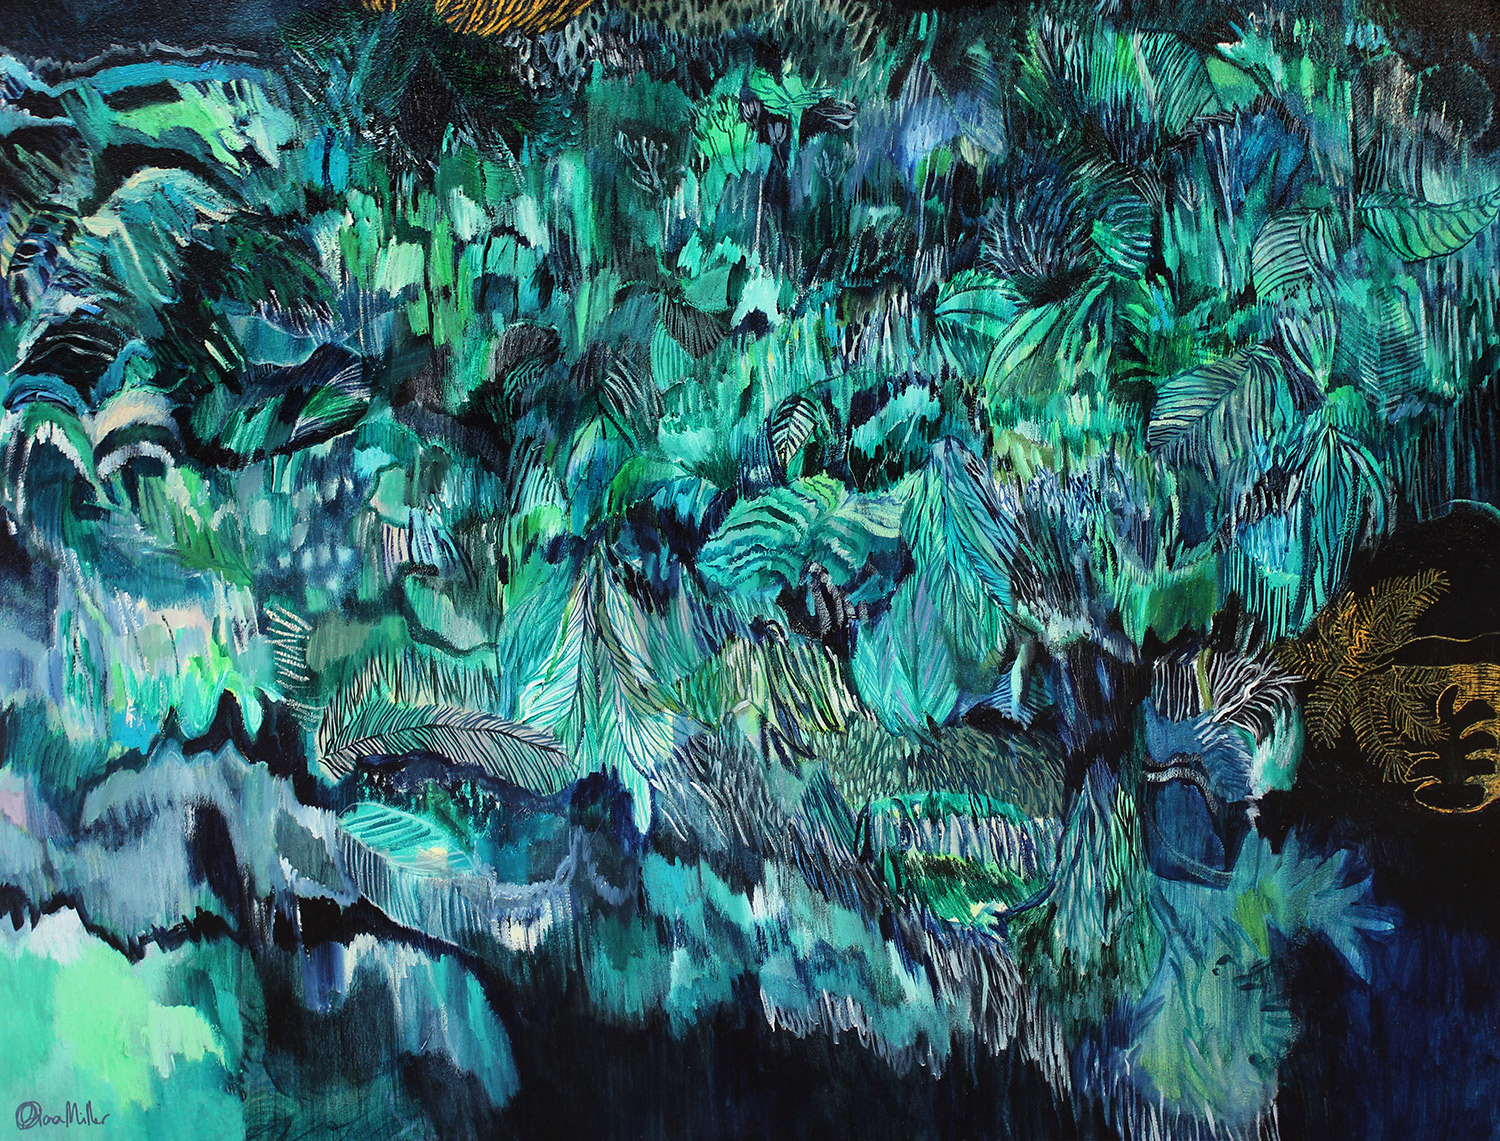 Life is an Adventure  120cm x90cm  SOLD  This painting takes us on an adventure through thick undergrowth and jungle like vegetation. It represents the journeys we take through our lives and the paths we choose to explore. Sometimes there is treasure to be found.